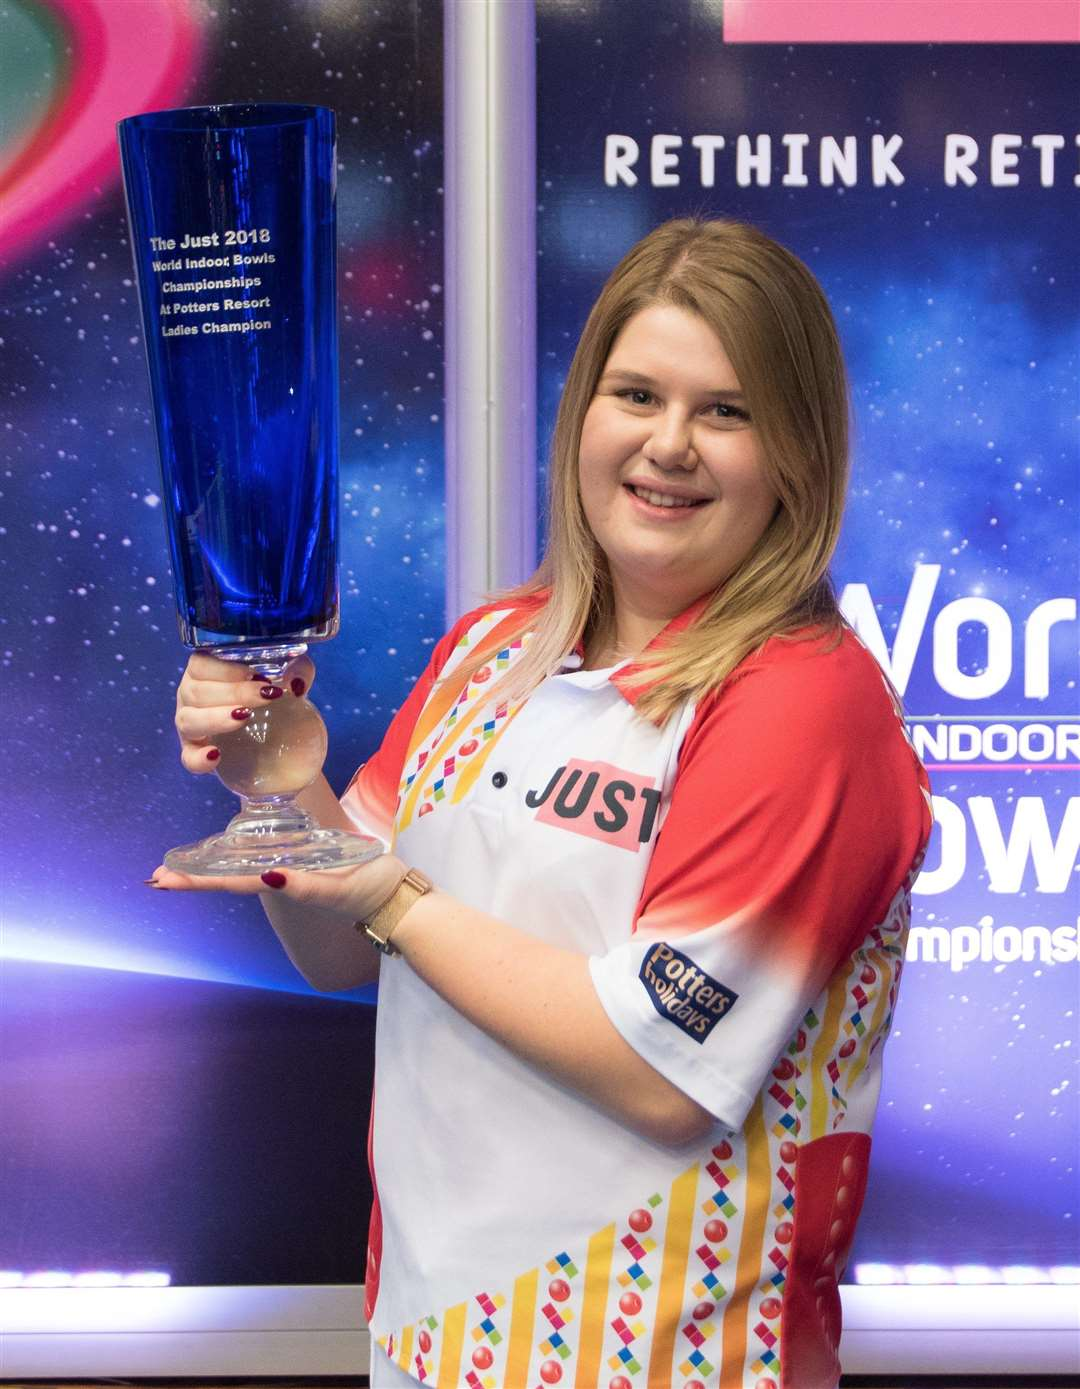 Katherine Rednall with the Langham Glass trophy after beating Bex Field (13-3, 13-6) in the Ladies' Singles final of the World Indoor Bowls Championships 2018. (6566250)